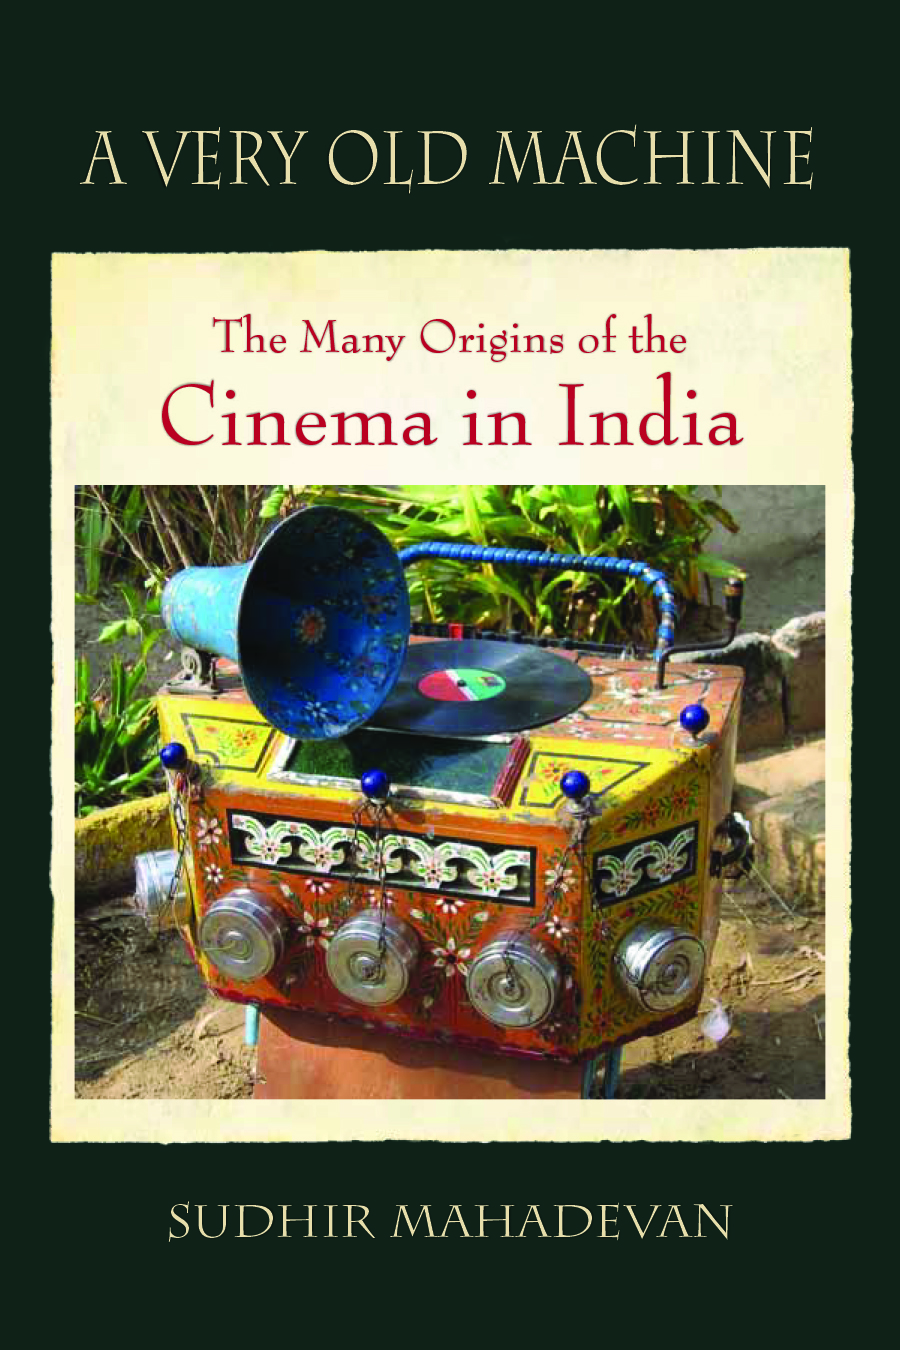 Image: A Very Old Machine, Sudhir Mahadevan, SUNY Press 2015